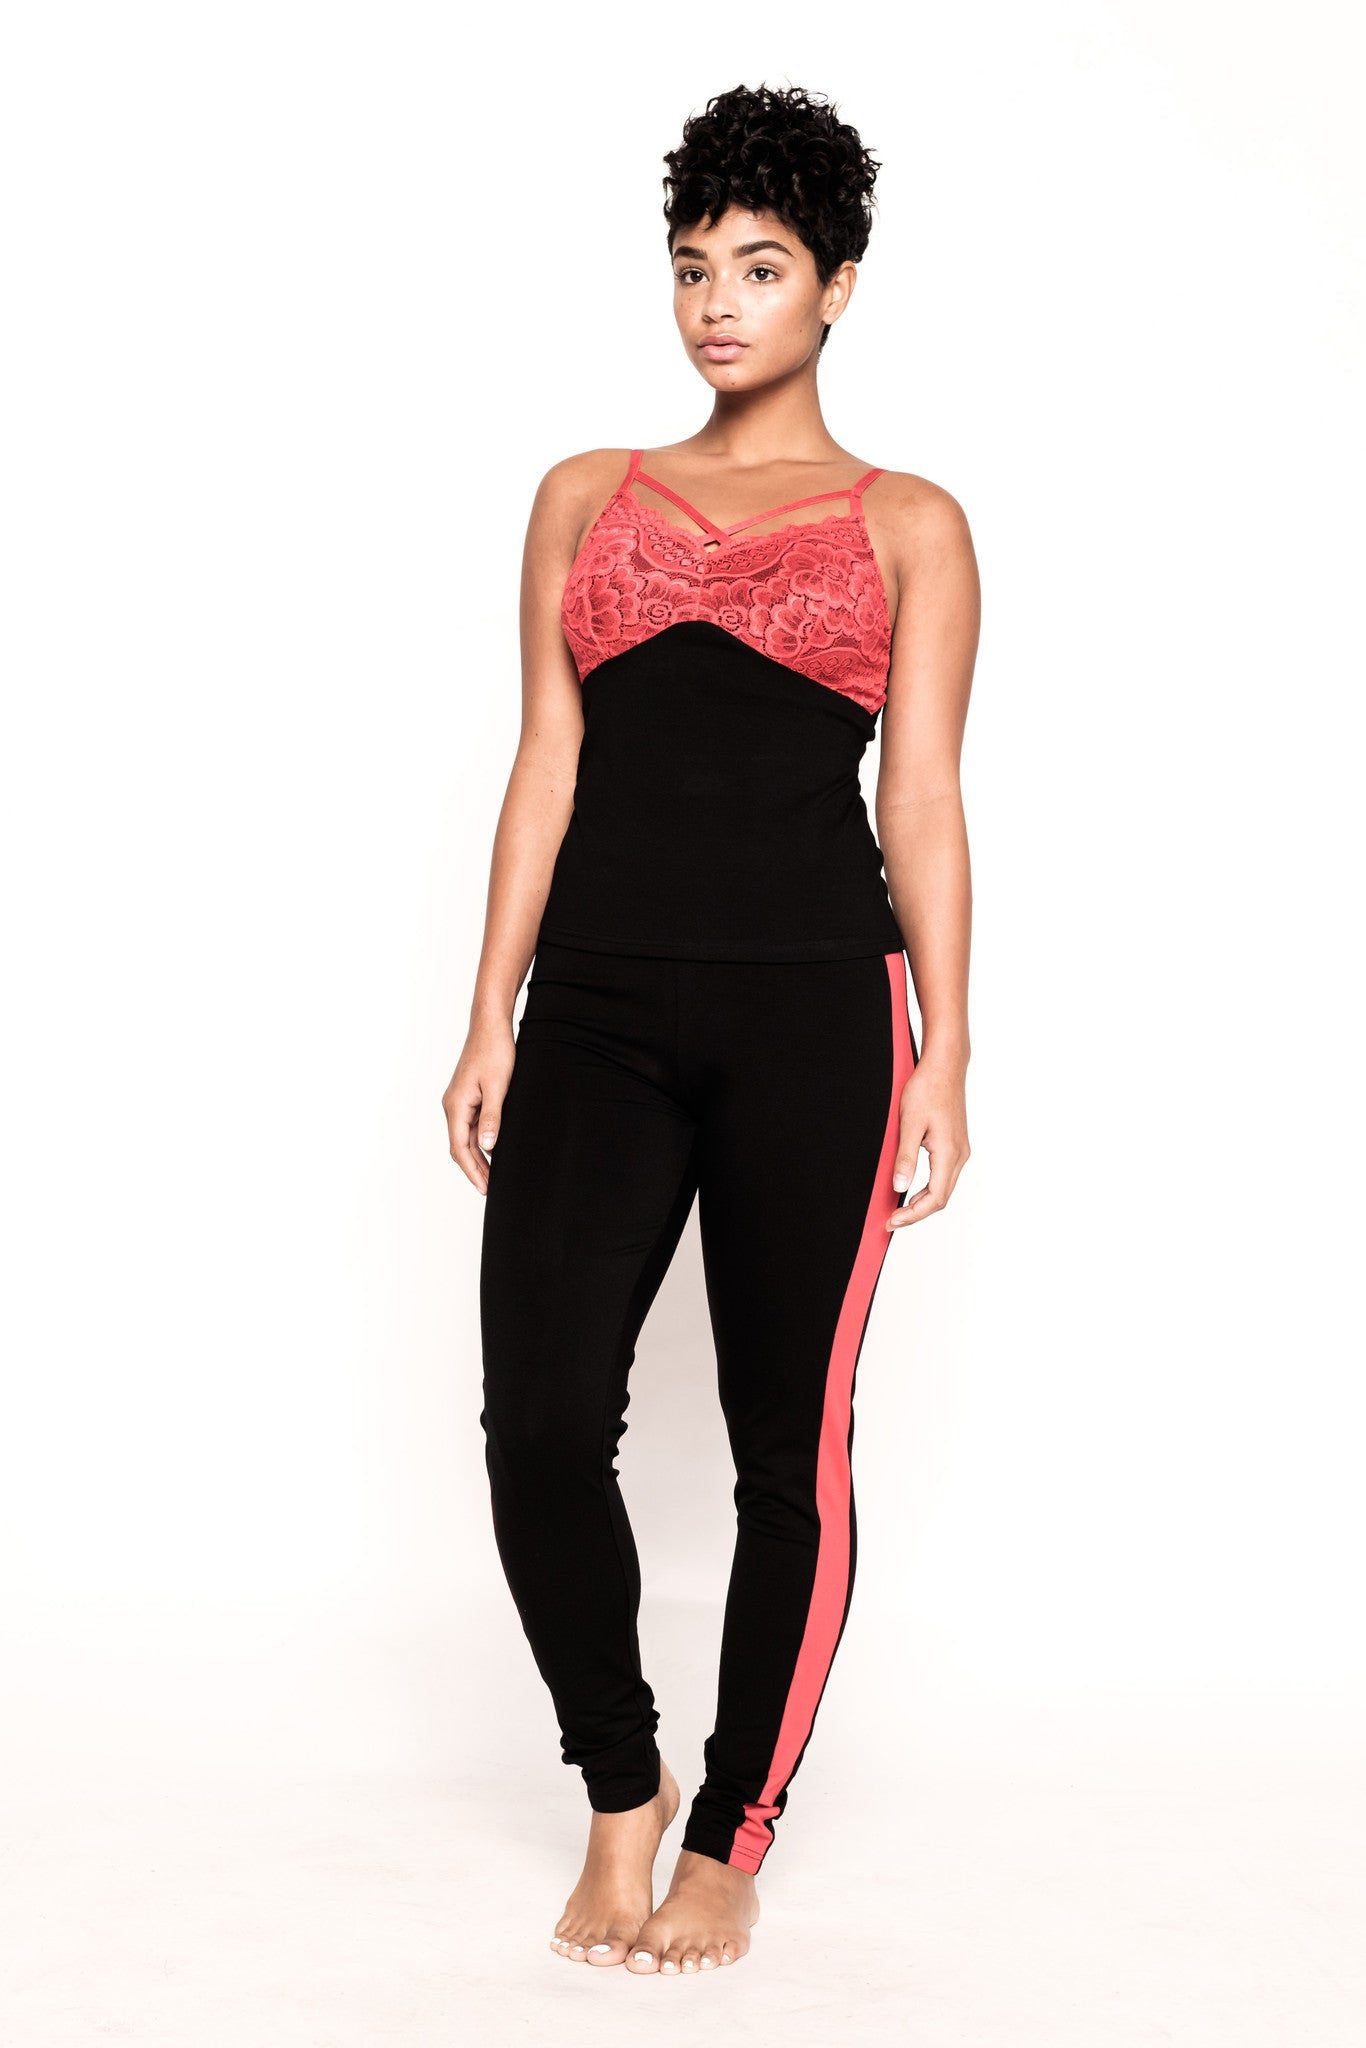 Saxy Marilyn Black and Red PJ Pant Set